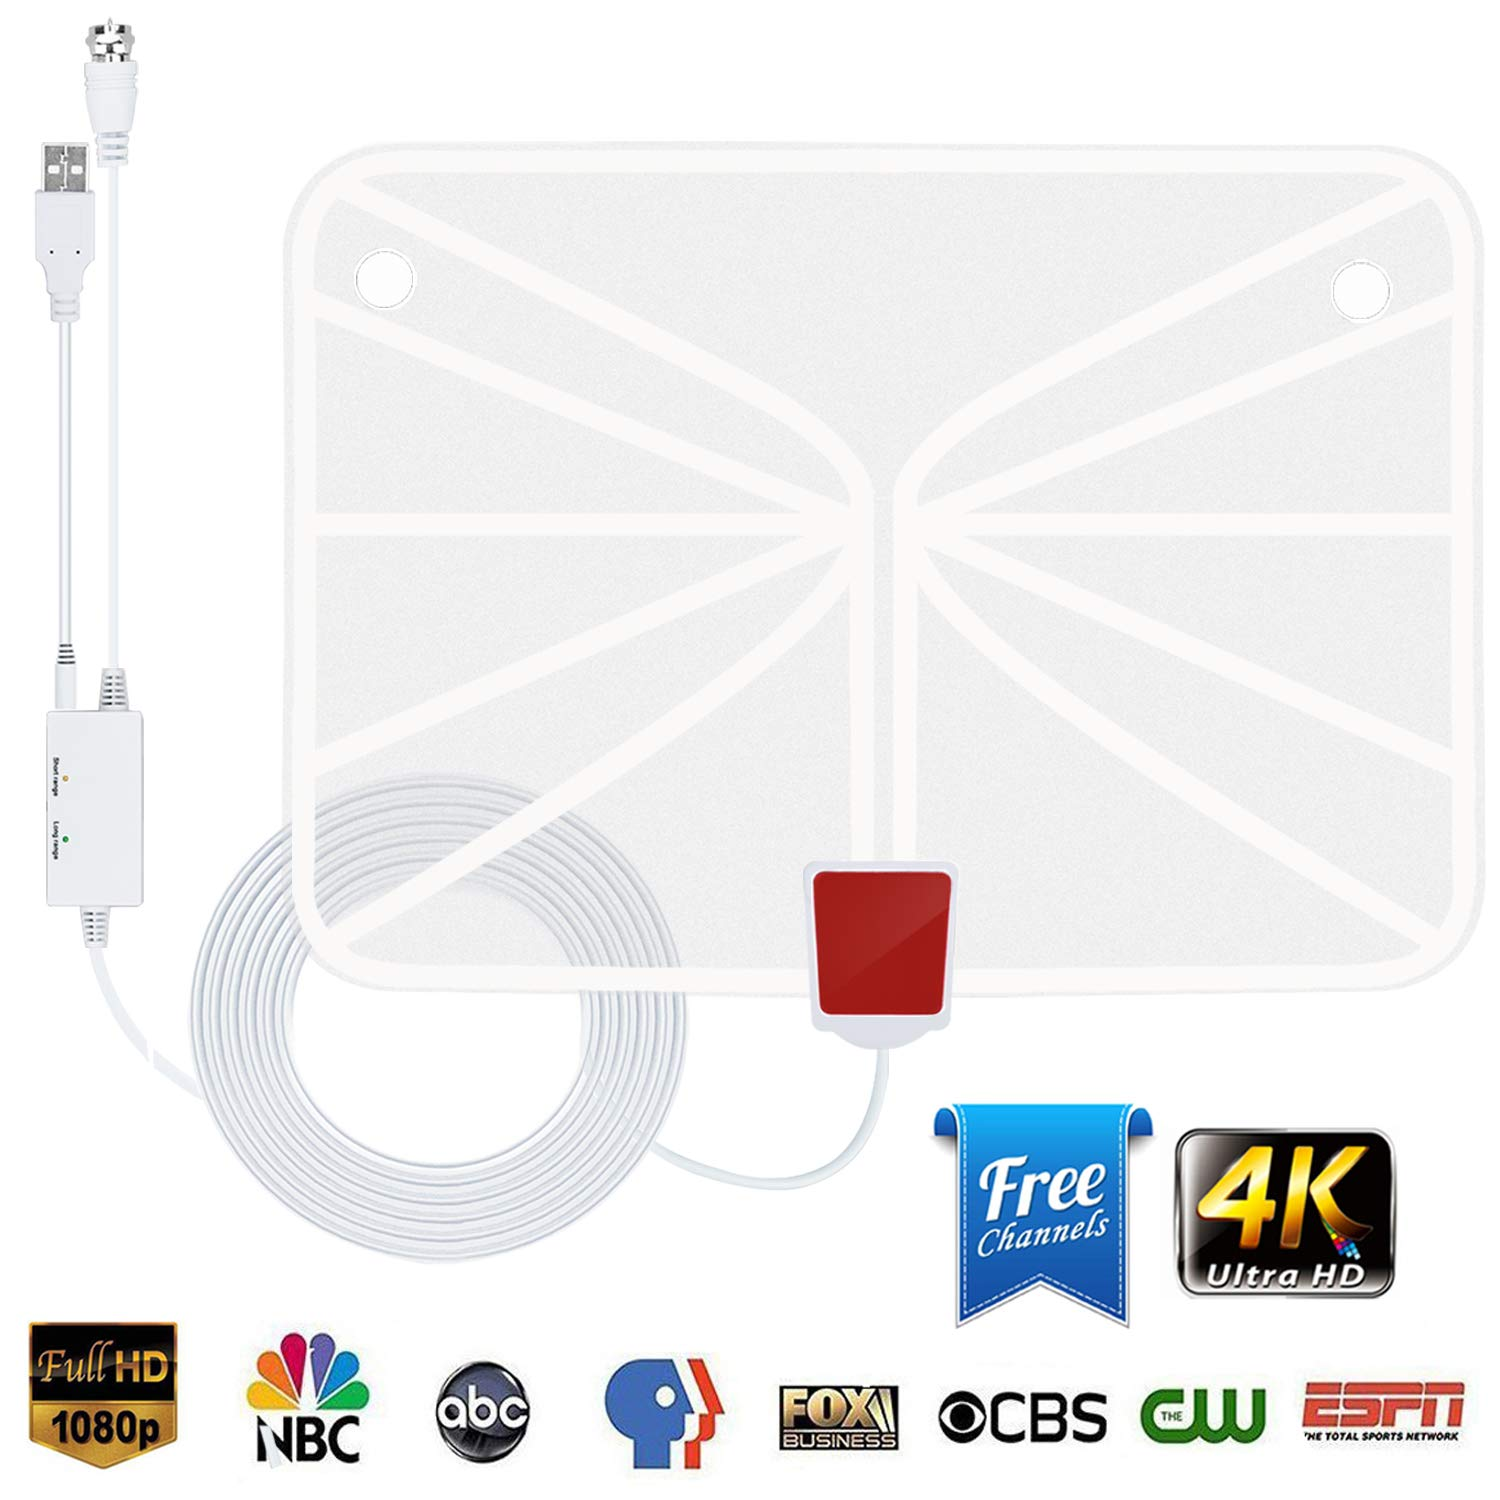 TV Antenna, Indoor HDTV Antenna 1080p/4K/2160p 60-95 Miles Range with 2018 Newest Type Switch Console Amplifier Signal Booster, USB Power Supply And 16.5 ft Coaxial Cable(White) by Eliubing